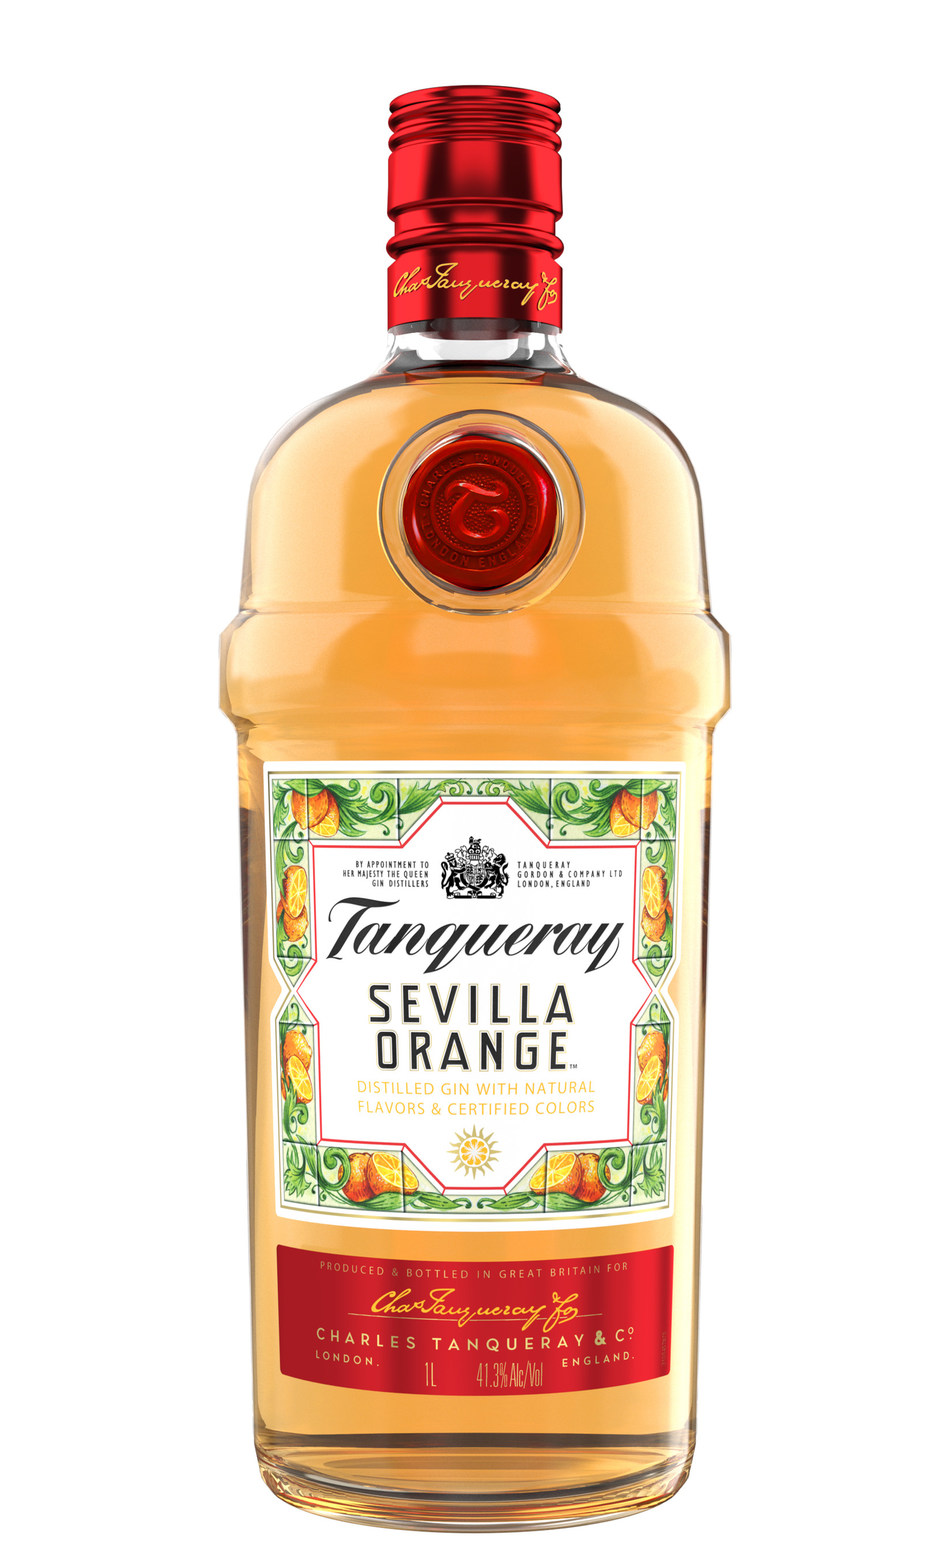 Tanqueray Sevilla Orange launches in Miami and Orlando.